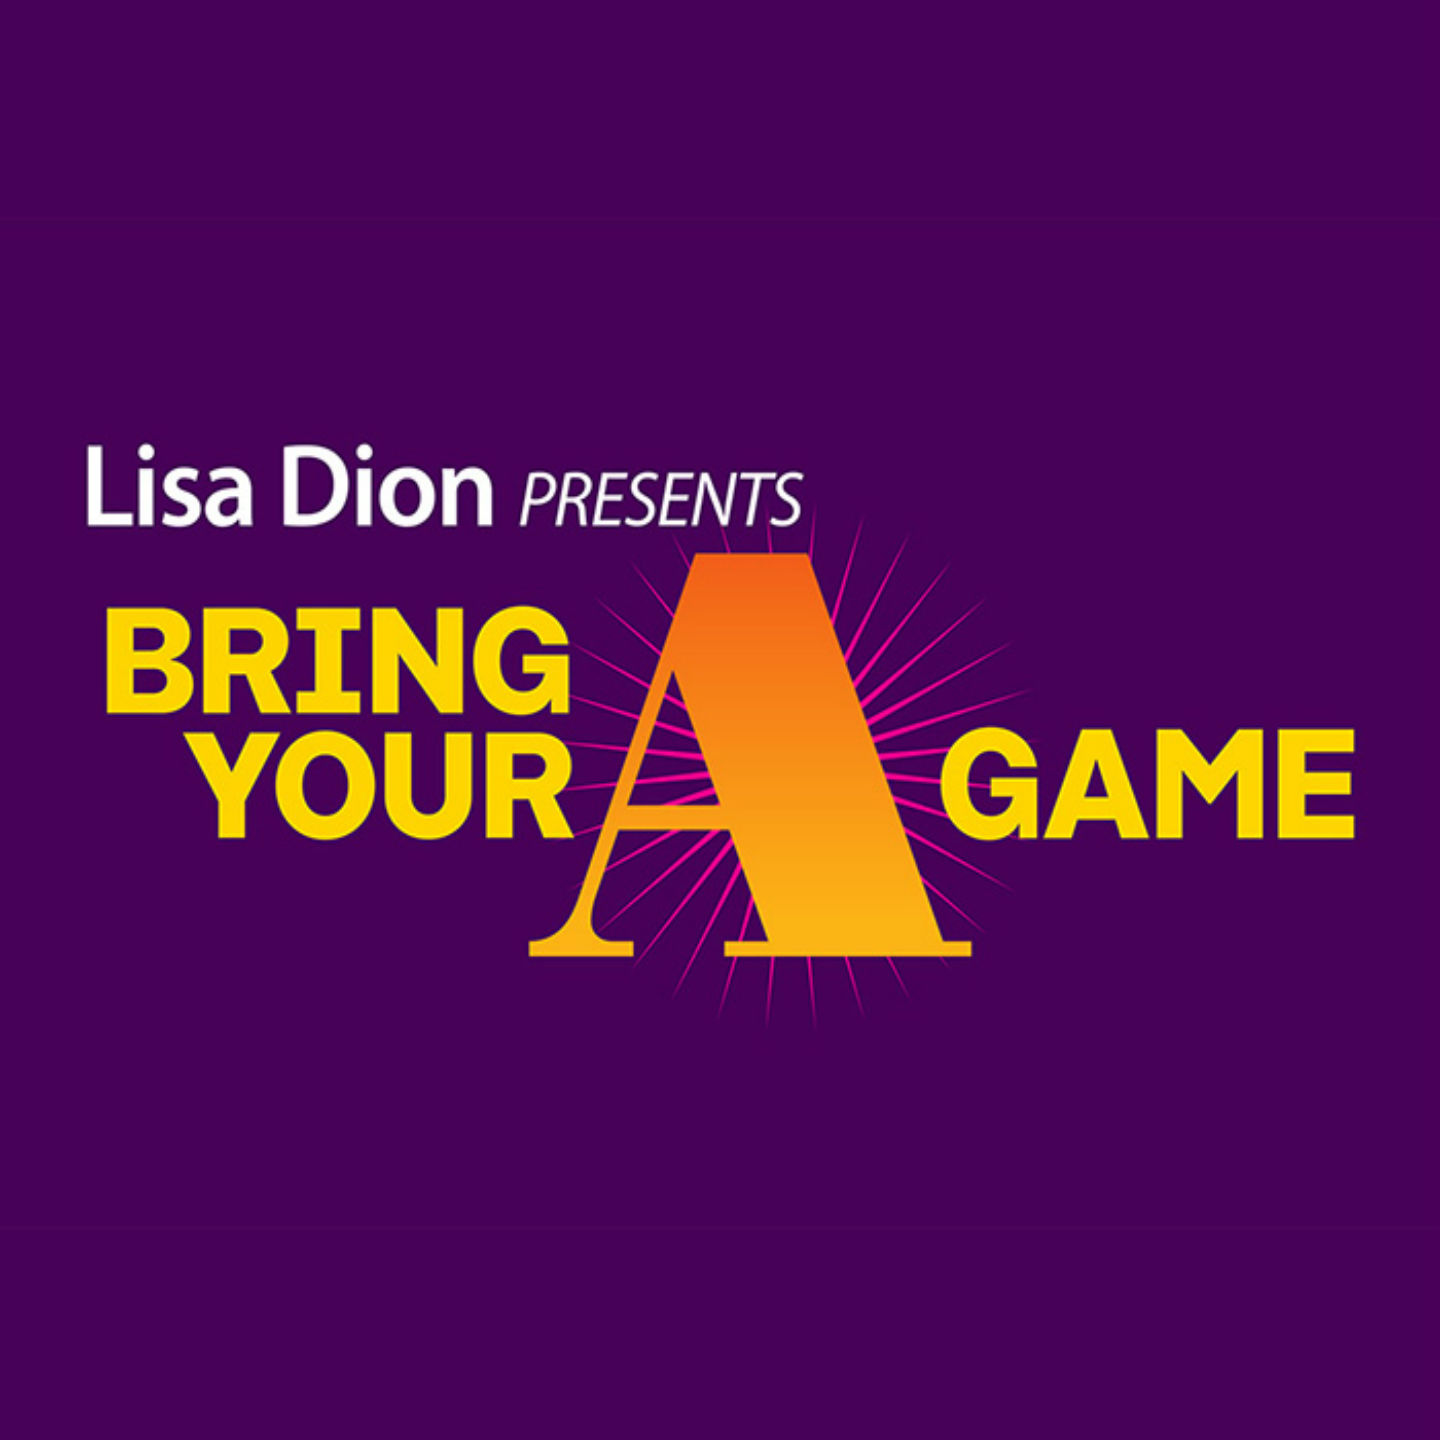 Lisa Dion presents Bring Your